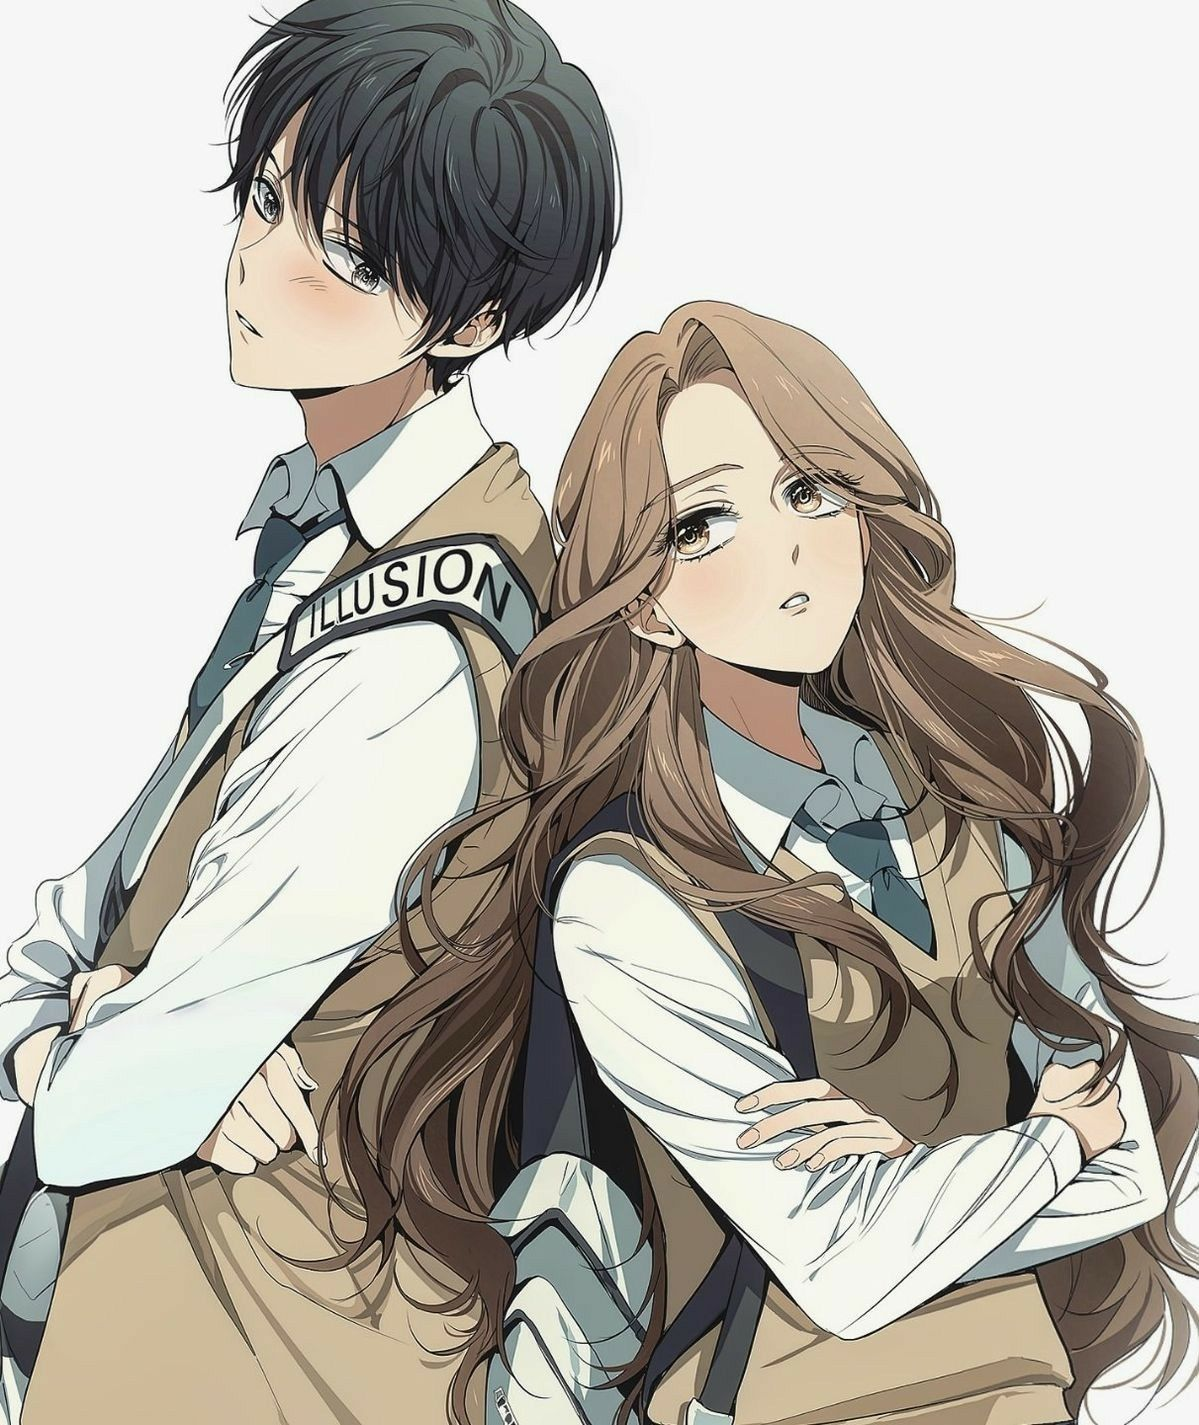 Pin on adorable anime couples